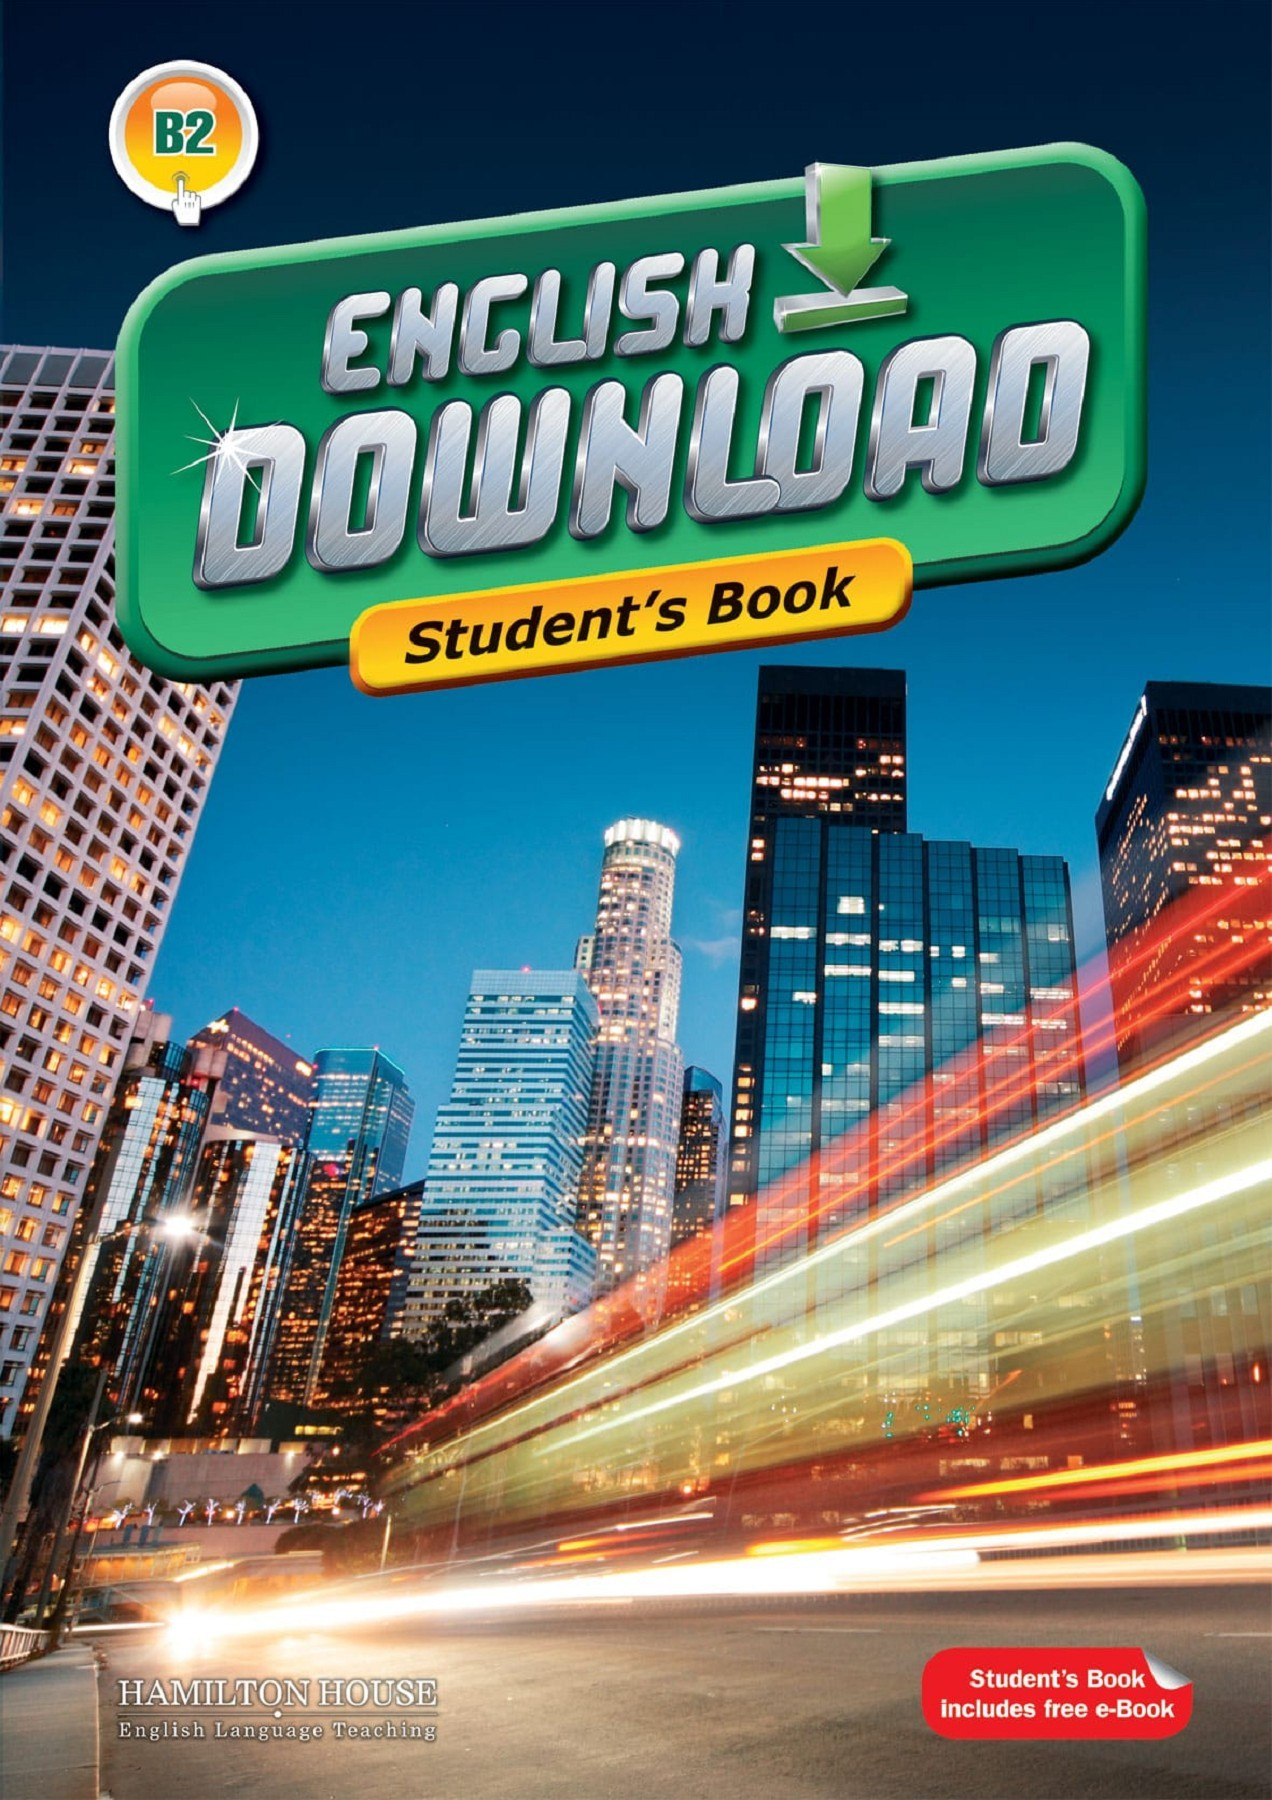 Libros B2 Ingles Pdf English Download B2 Student S Book